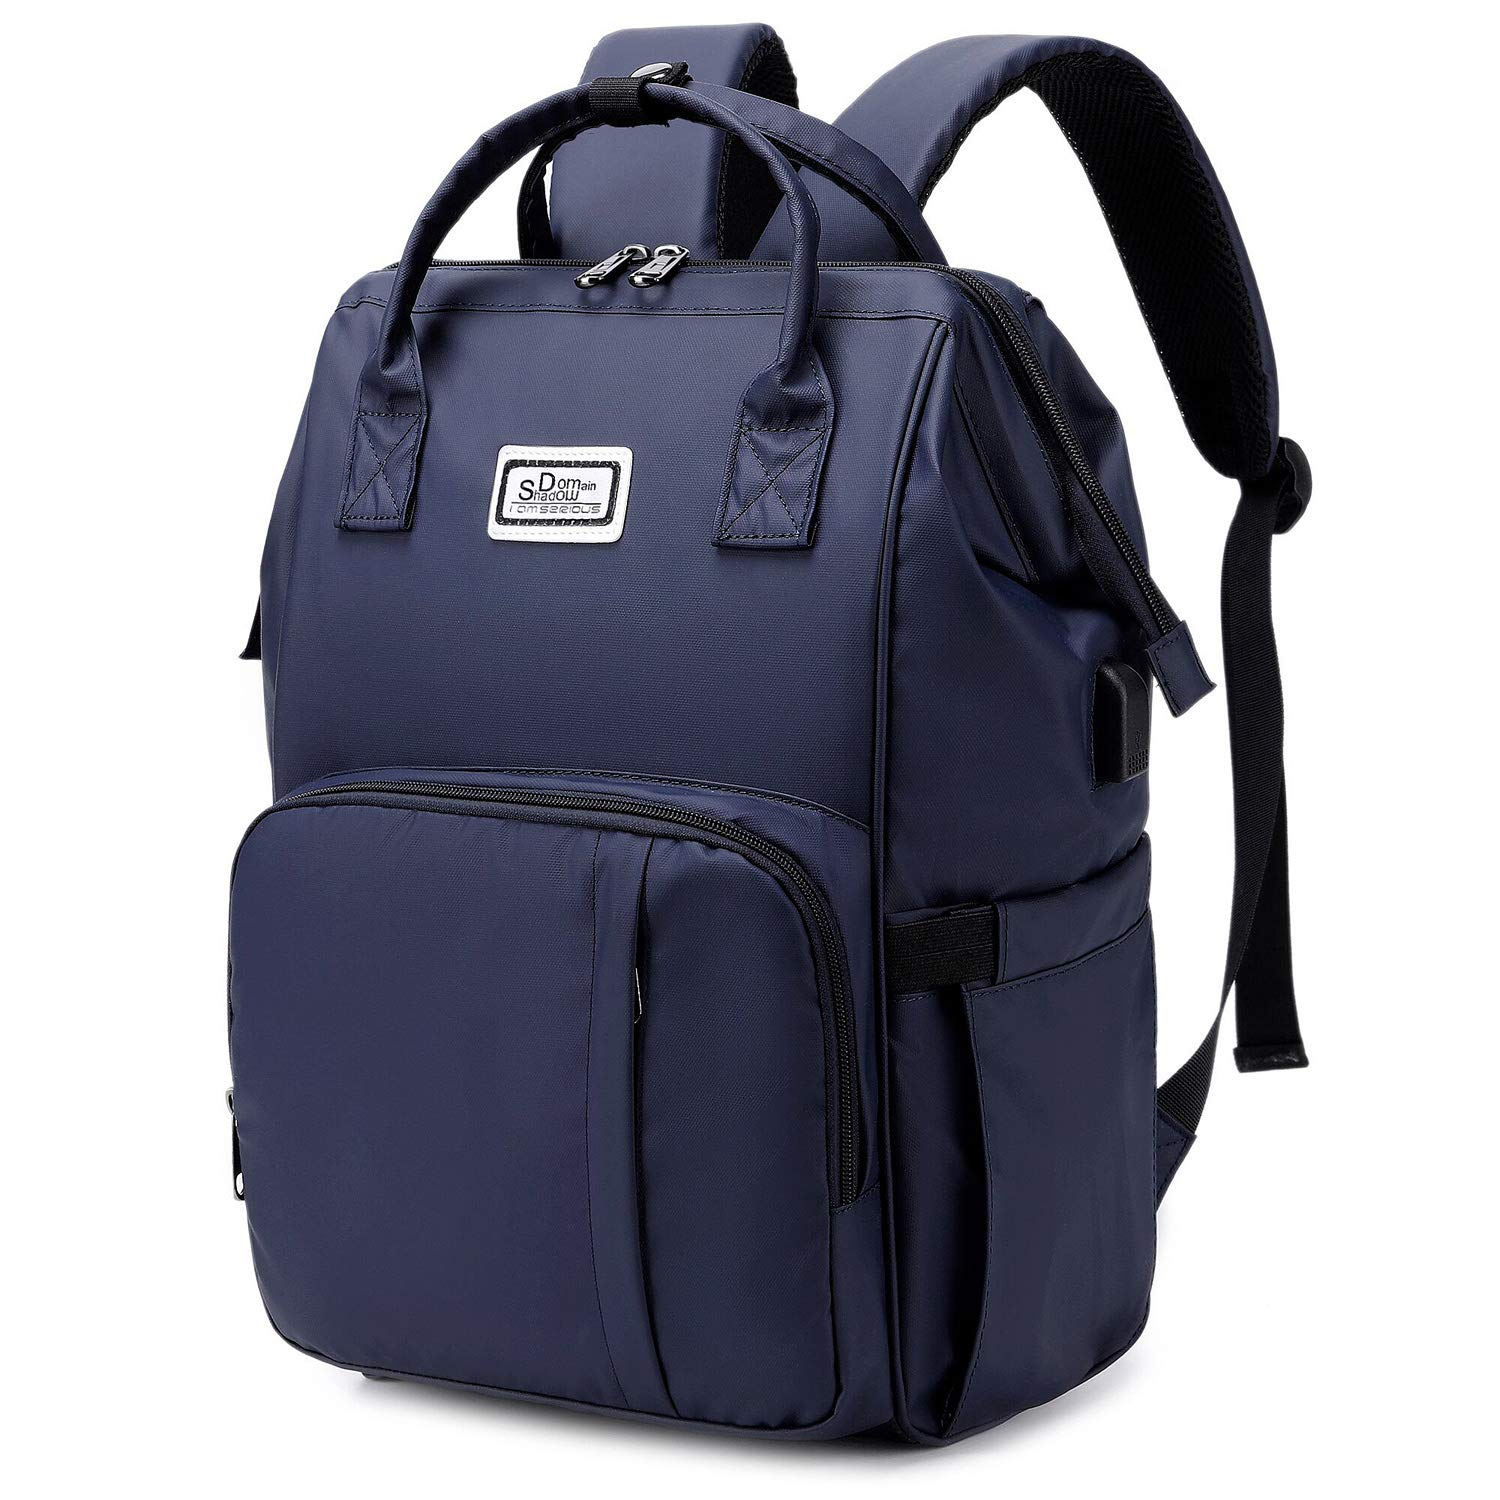 15.6 Inch Laptop Backpack Work Travel Bag USB Anti-Theft Pocket, Professional Tote Purse Stylish Water Resistant College Daypack